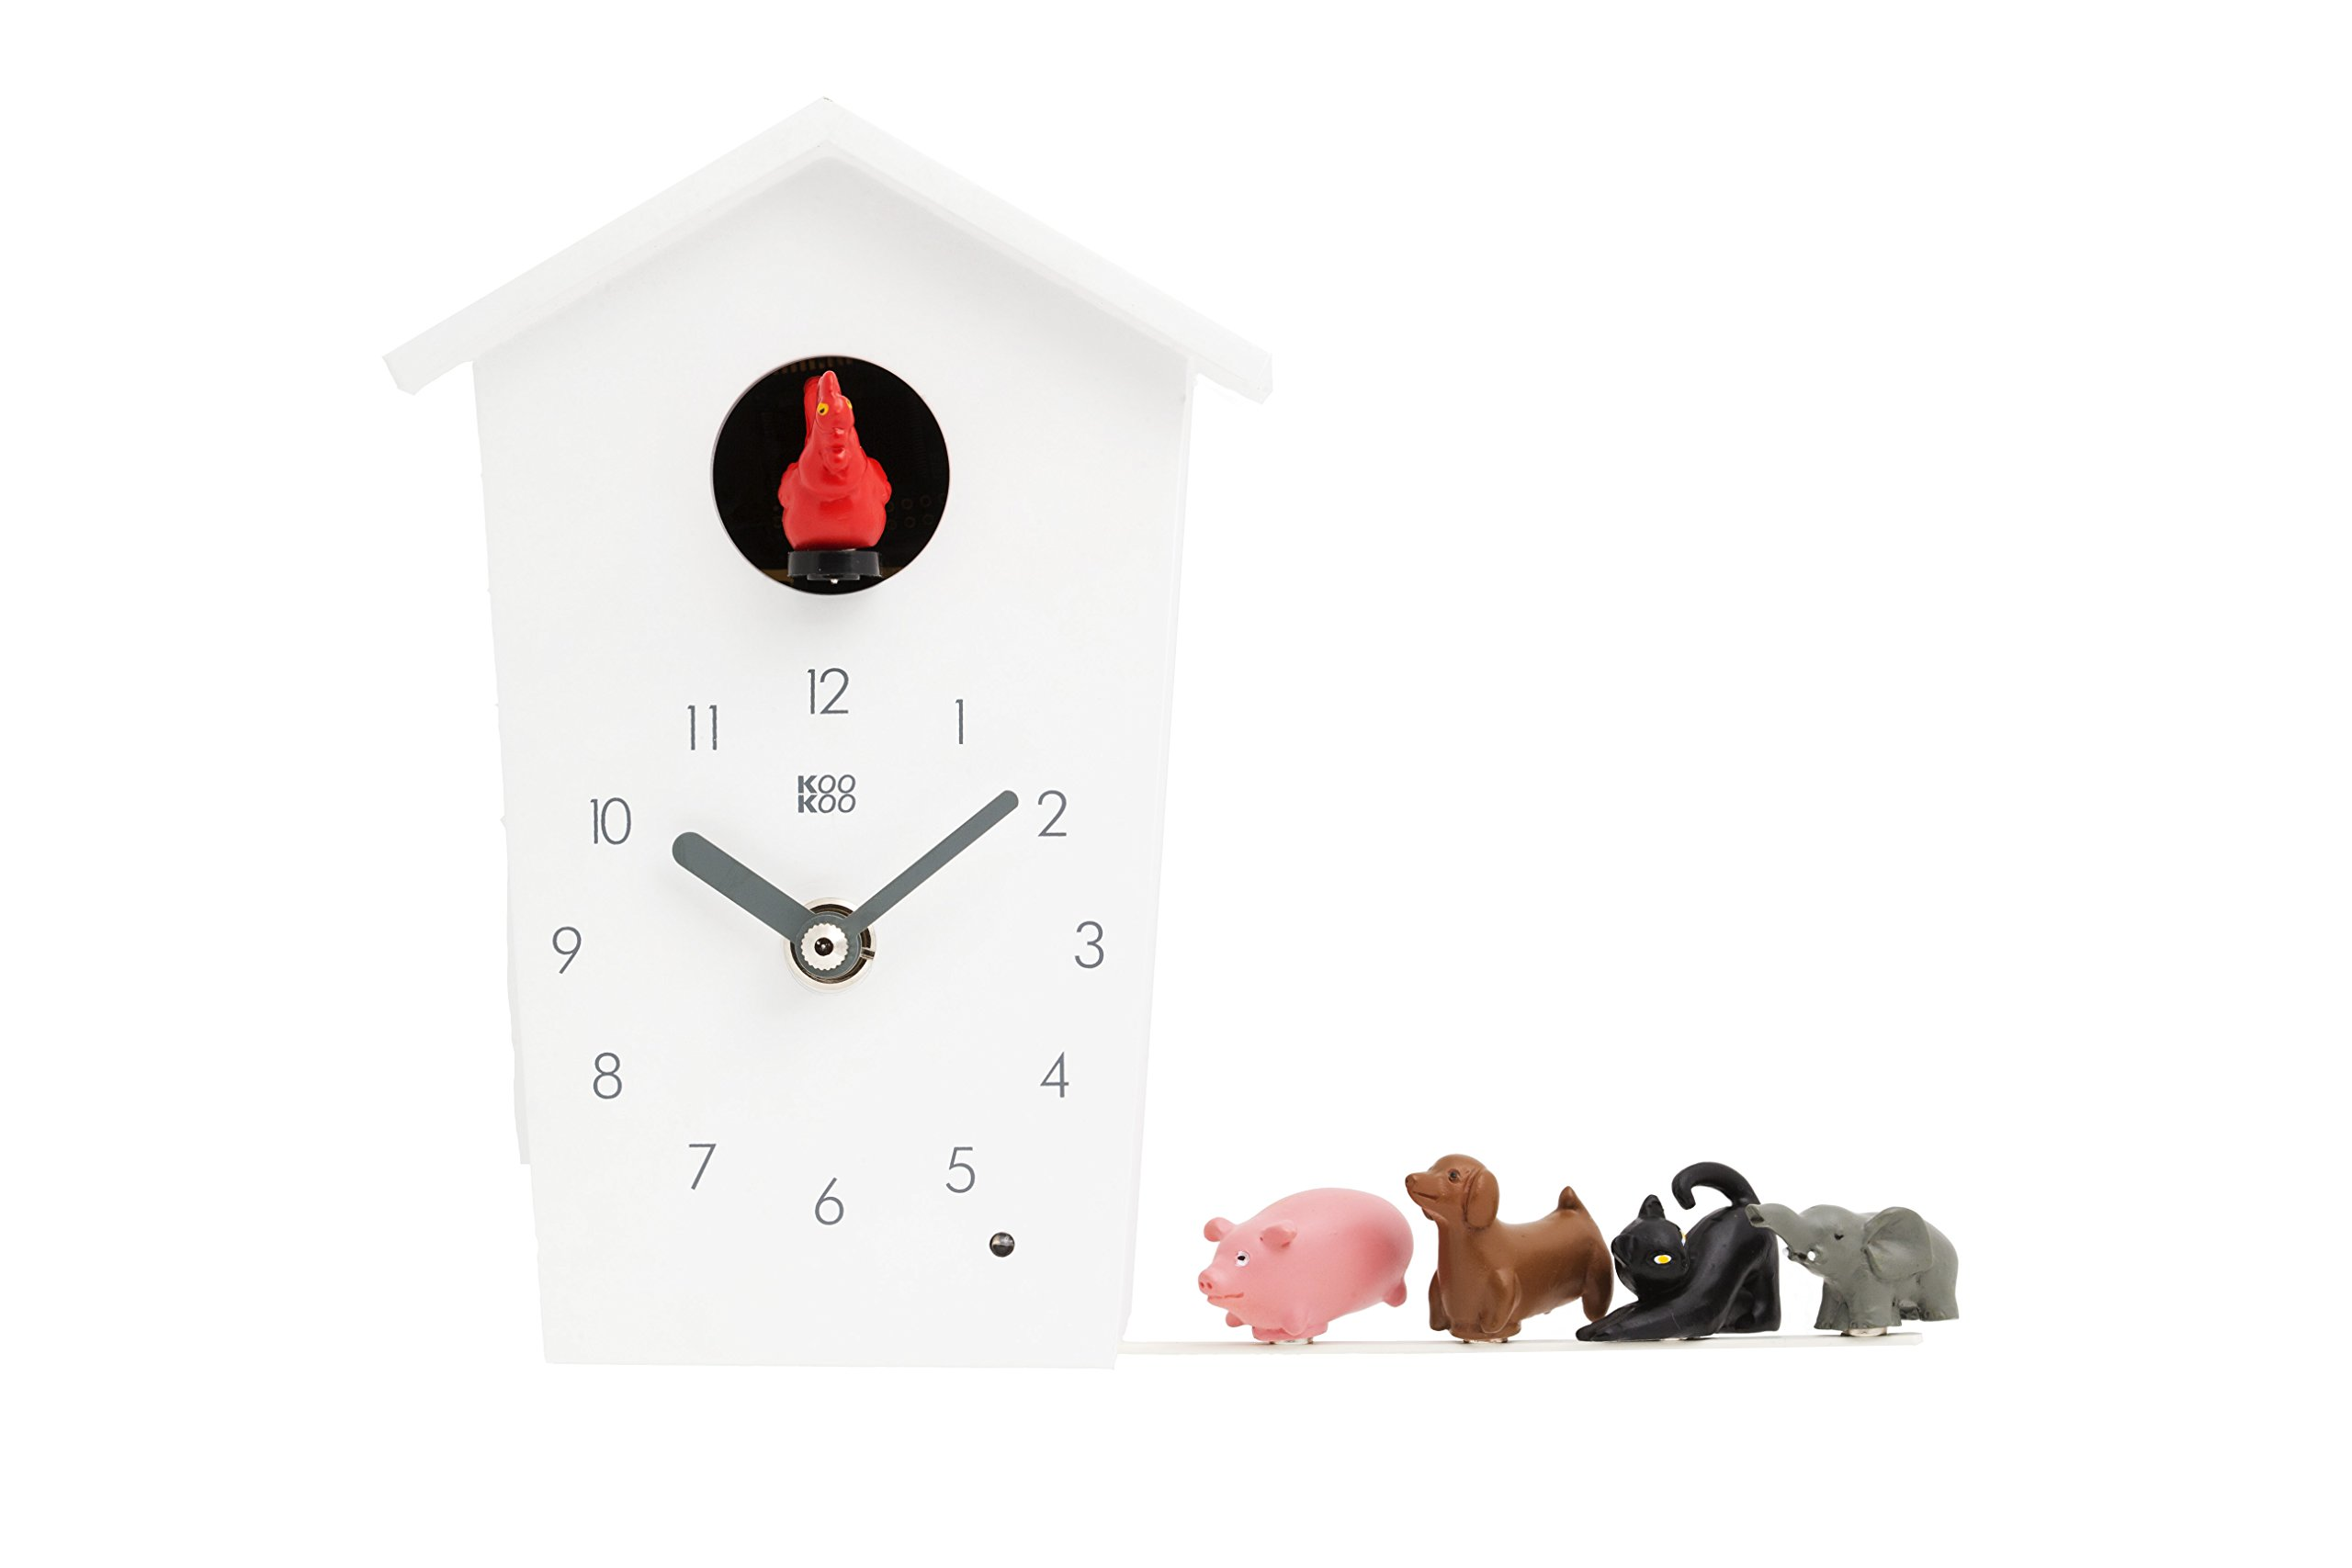 KOOKOO AnimalHouse White, Cuckoo Clock, Wall Clock with 5 Farm Animals, Field Recordings from Nature, Modern Design Sleek Clock